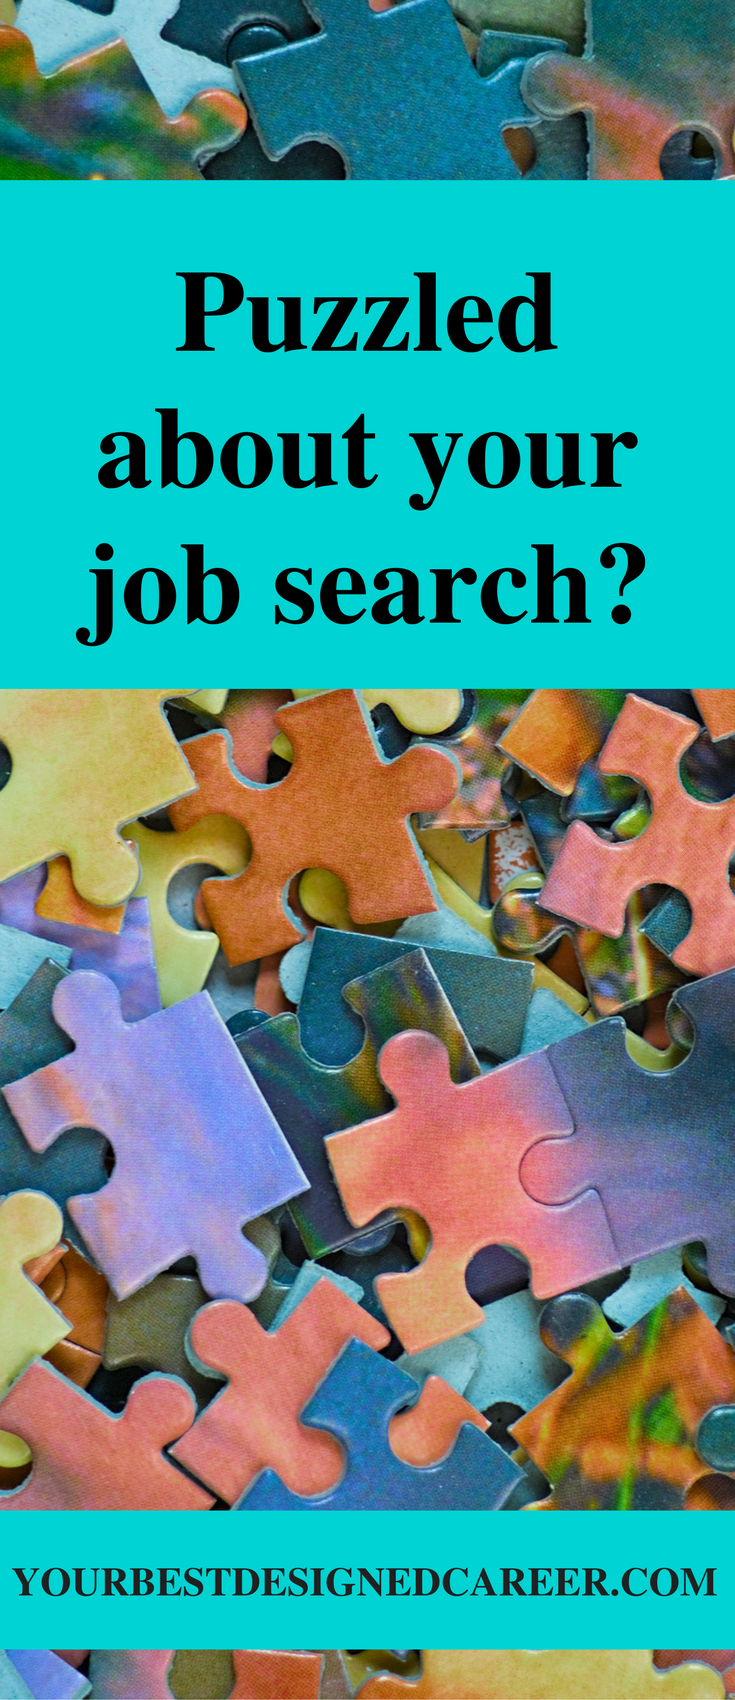 Job Searching | Pinterest | Career advice, Job interviews and Searching